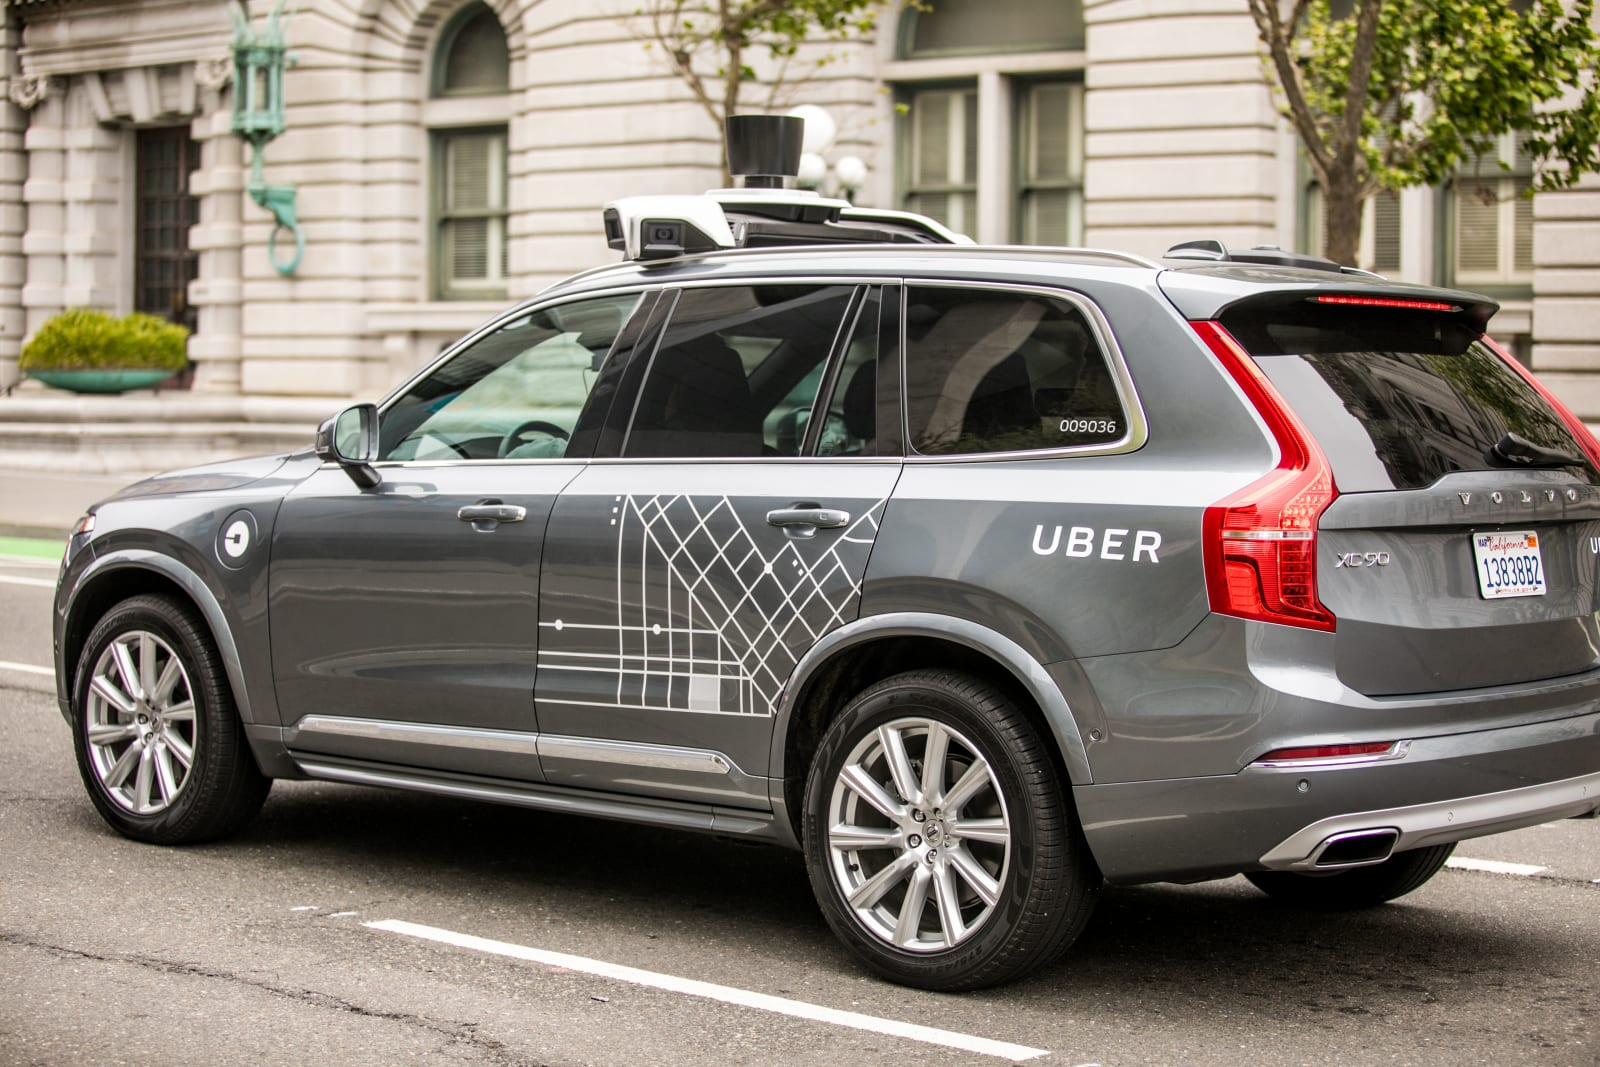 San Francisco, California, USA - May 16, 2017: An Uber self-driving Volvo XC90 SUV on 7th street and Market part of Uber's testi